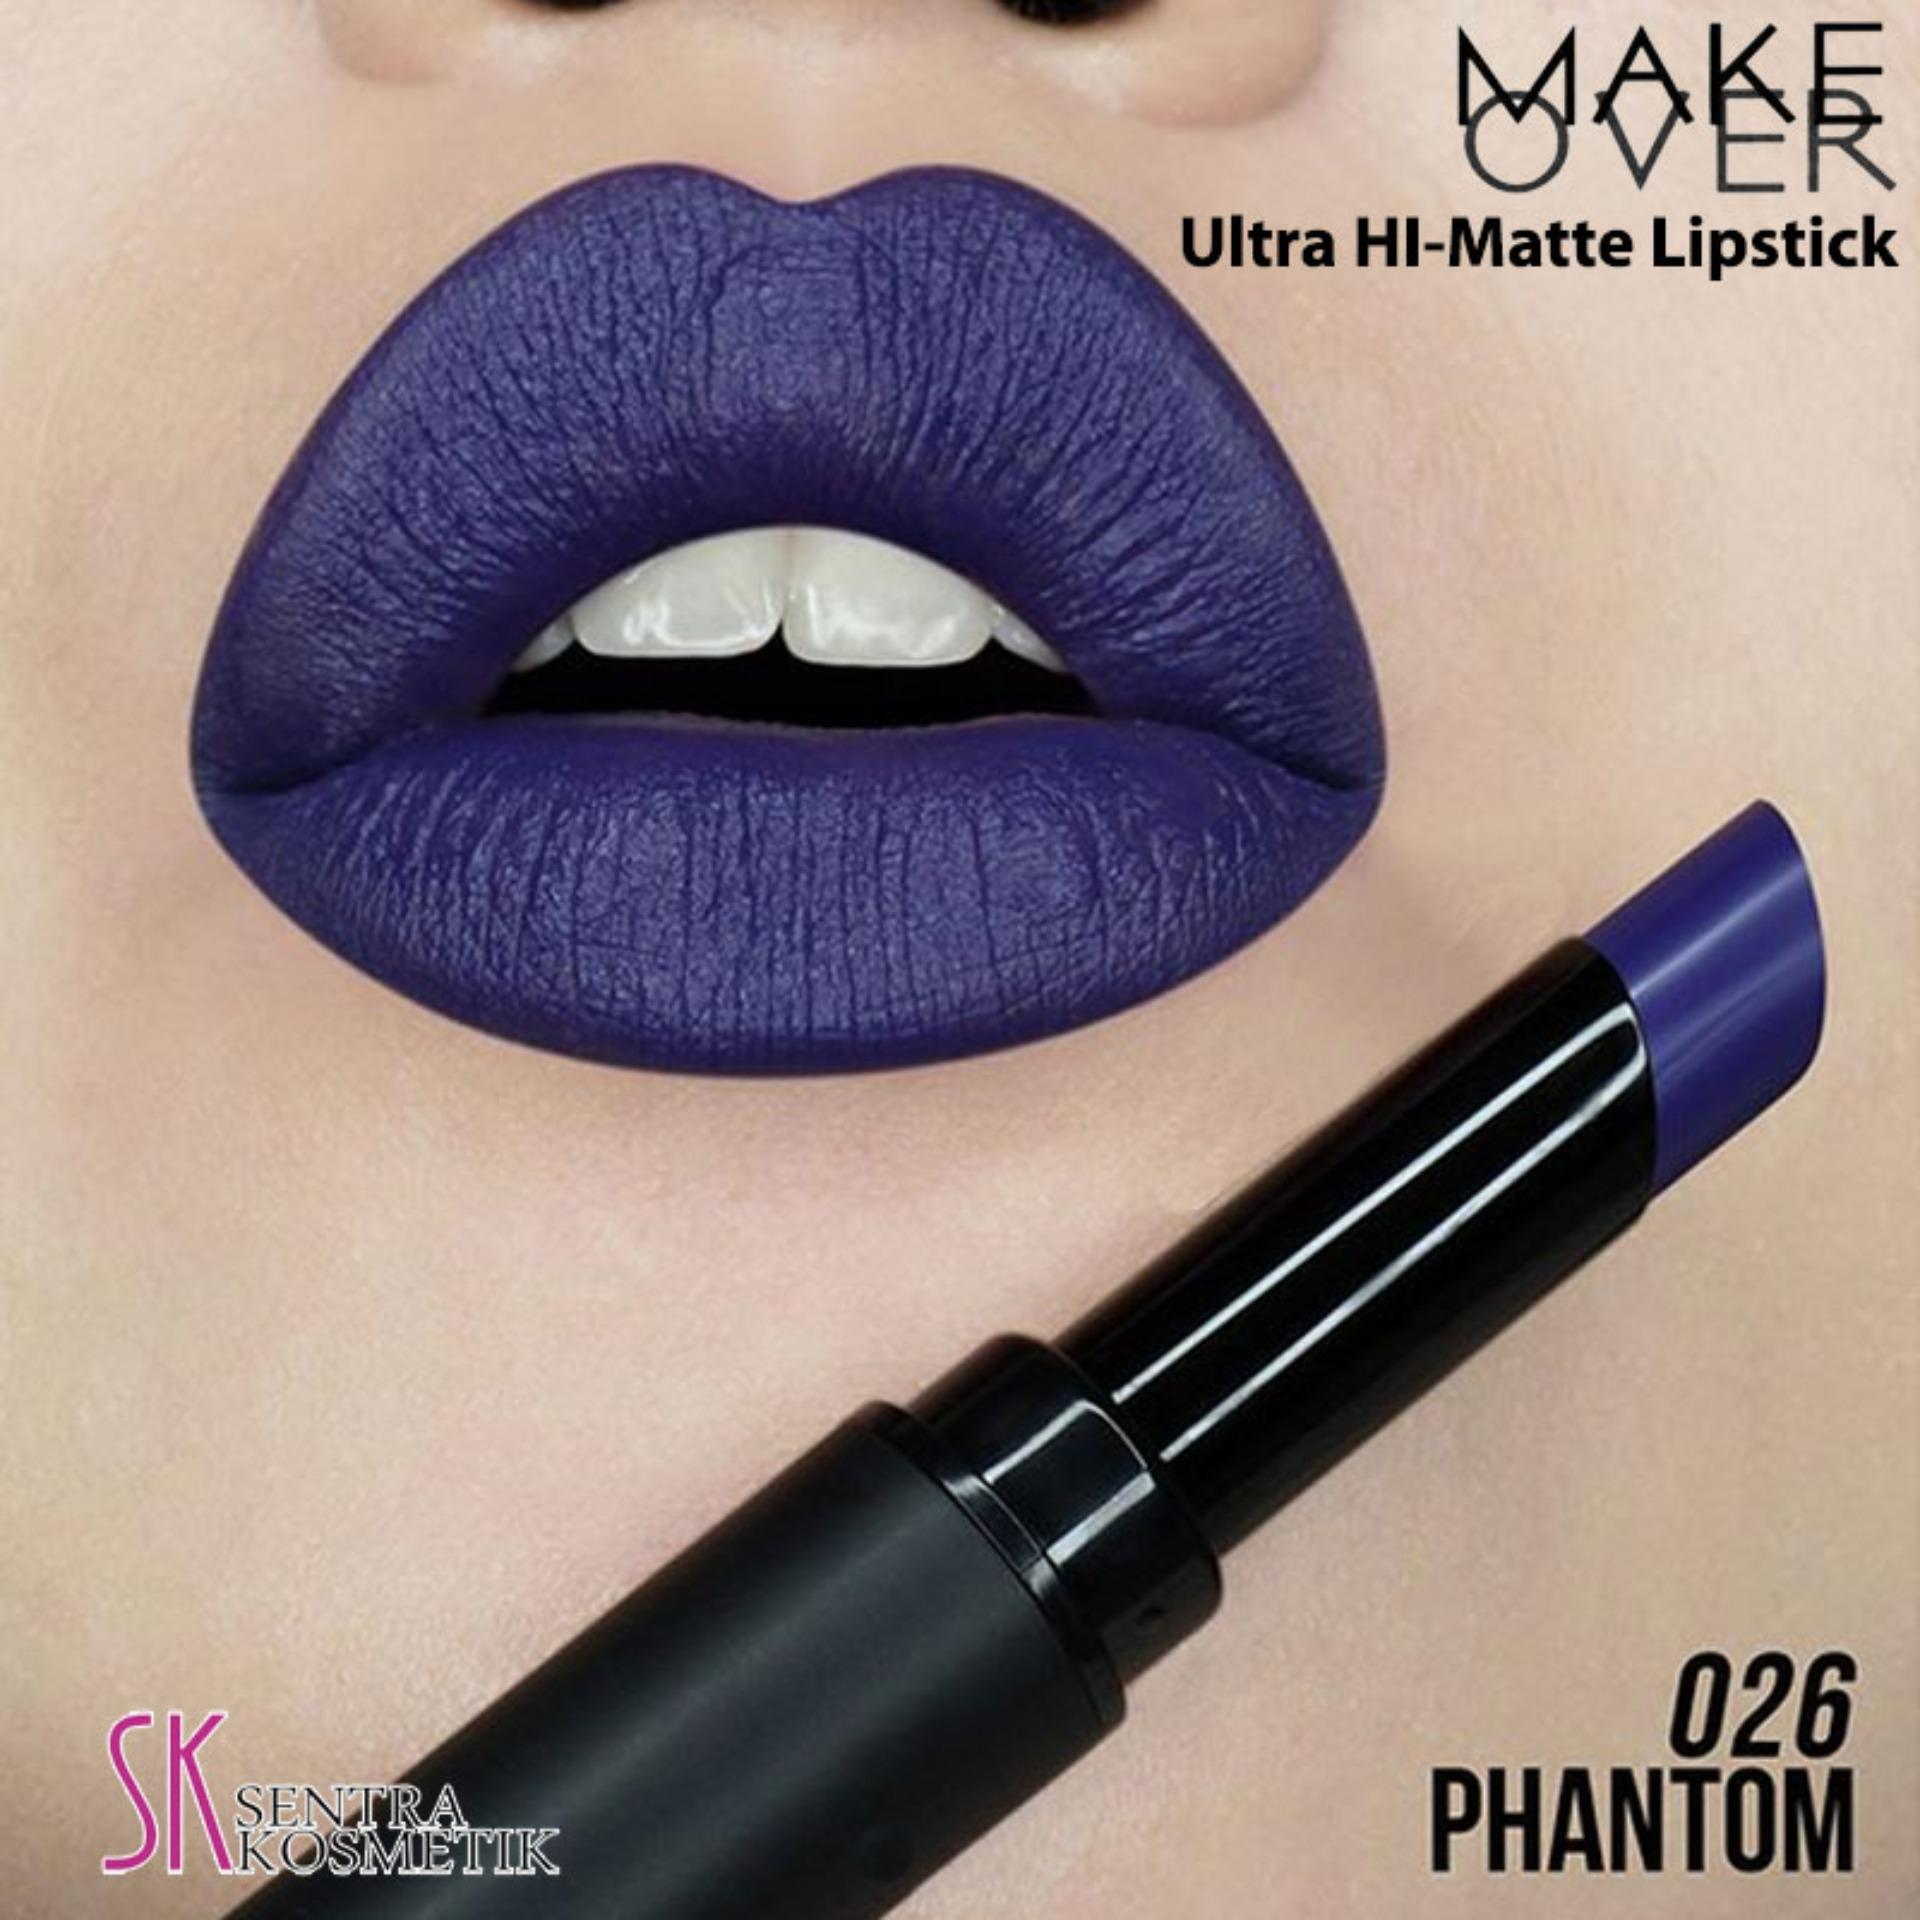 MAKE OVER ULTRA HI-MATTE Lipstick 026 - Phantom